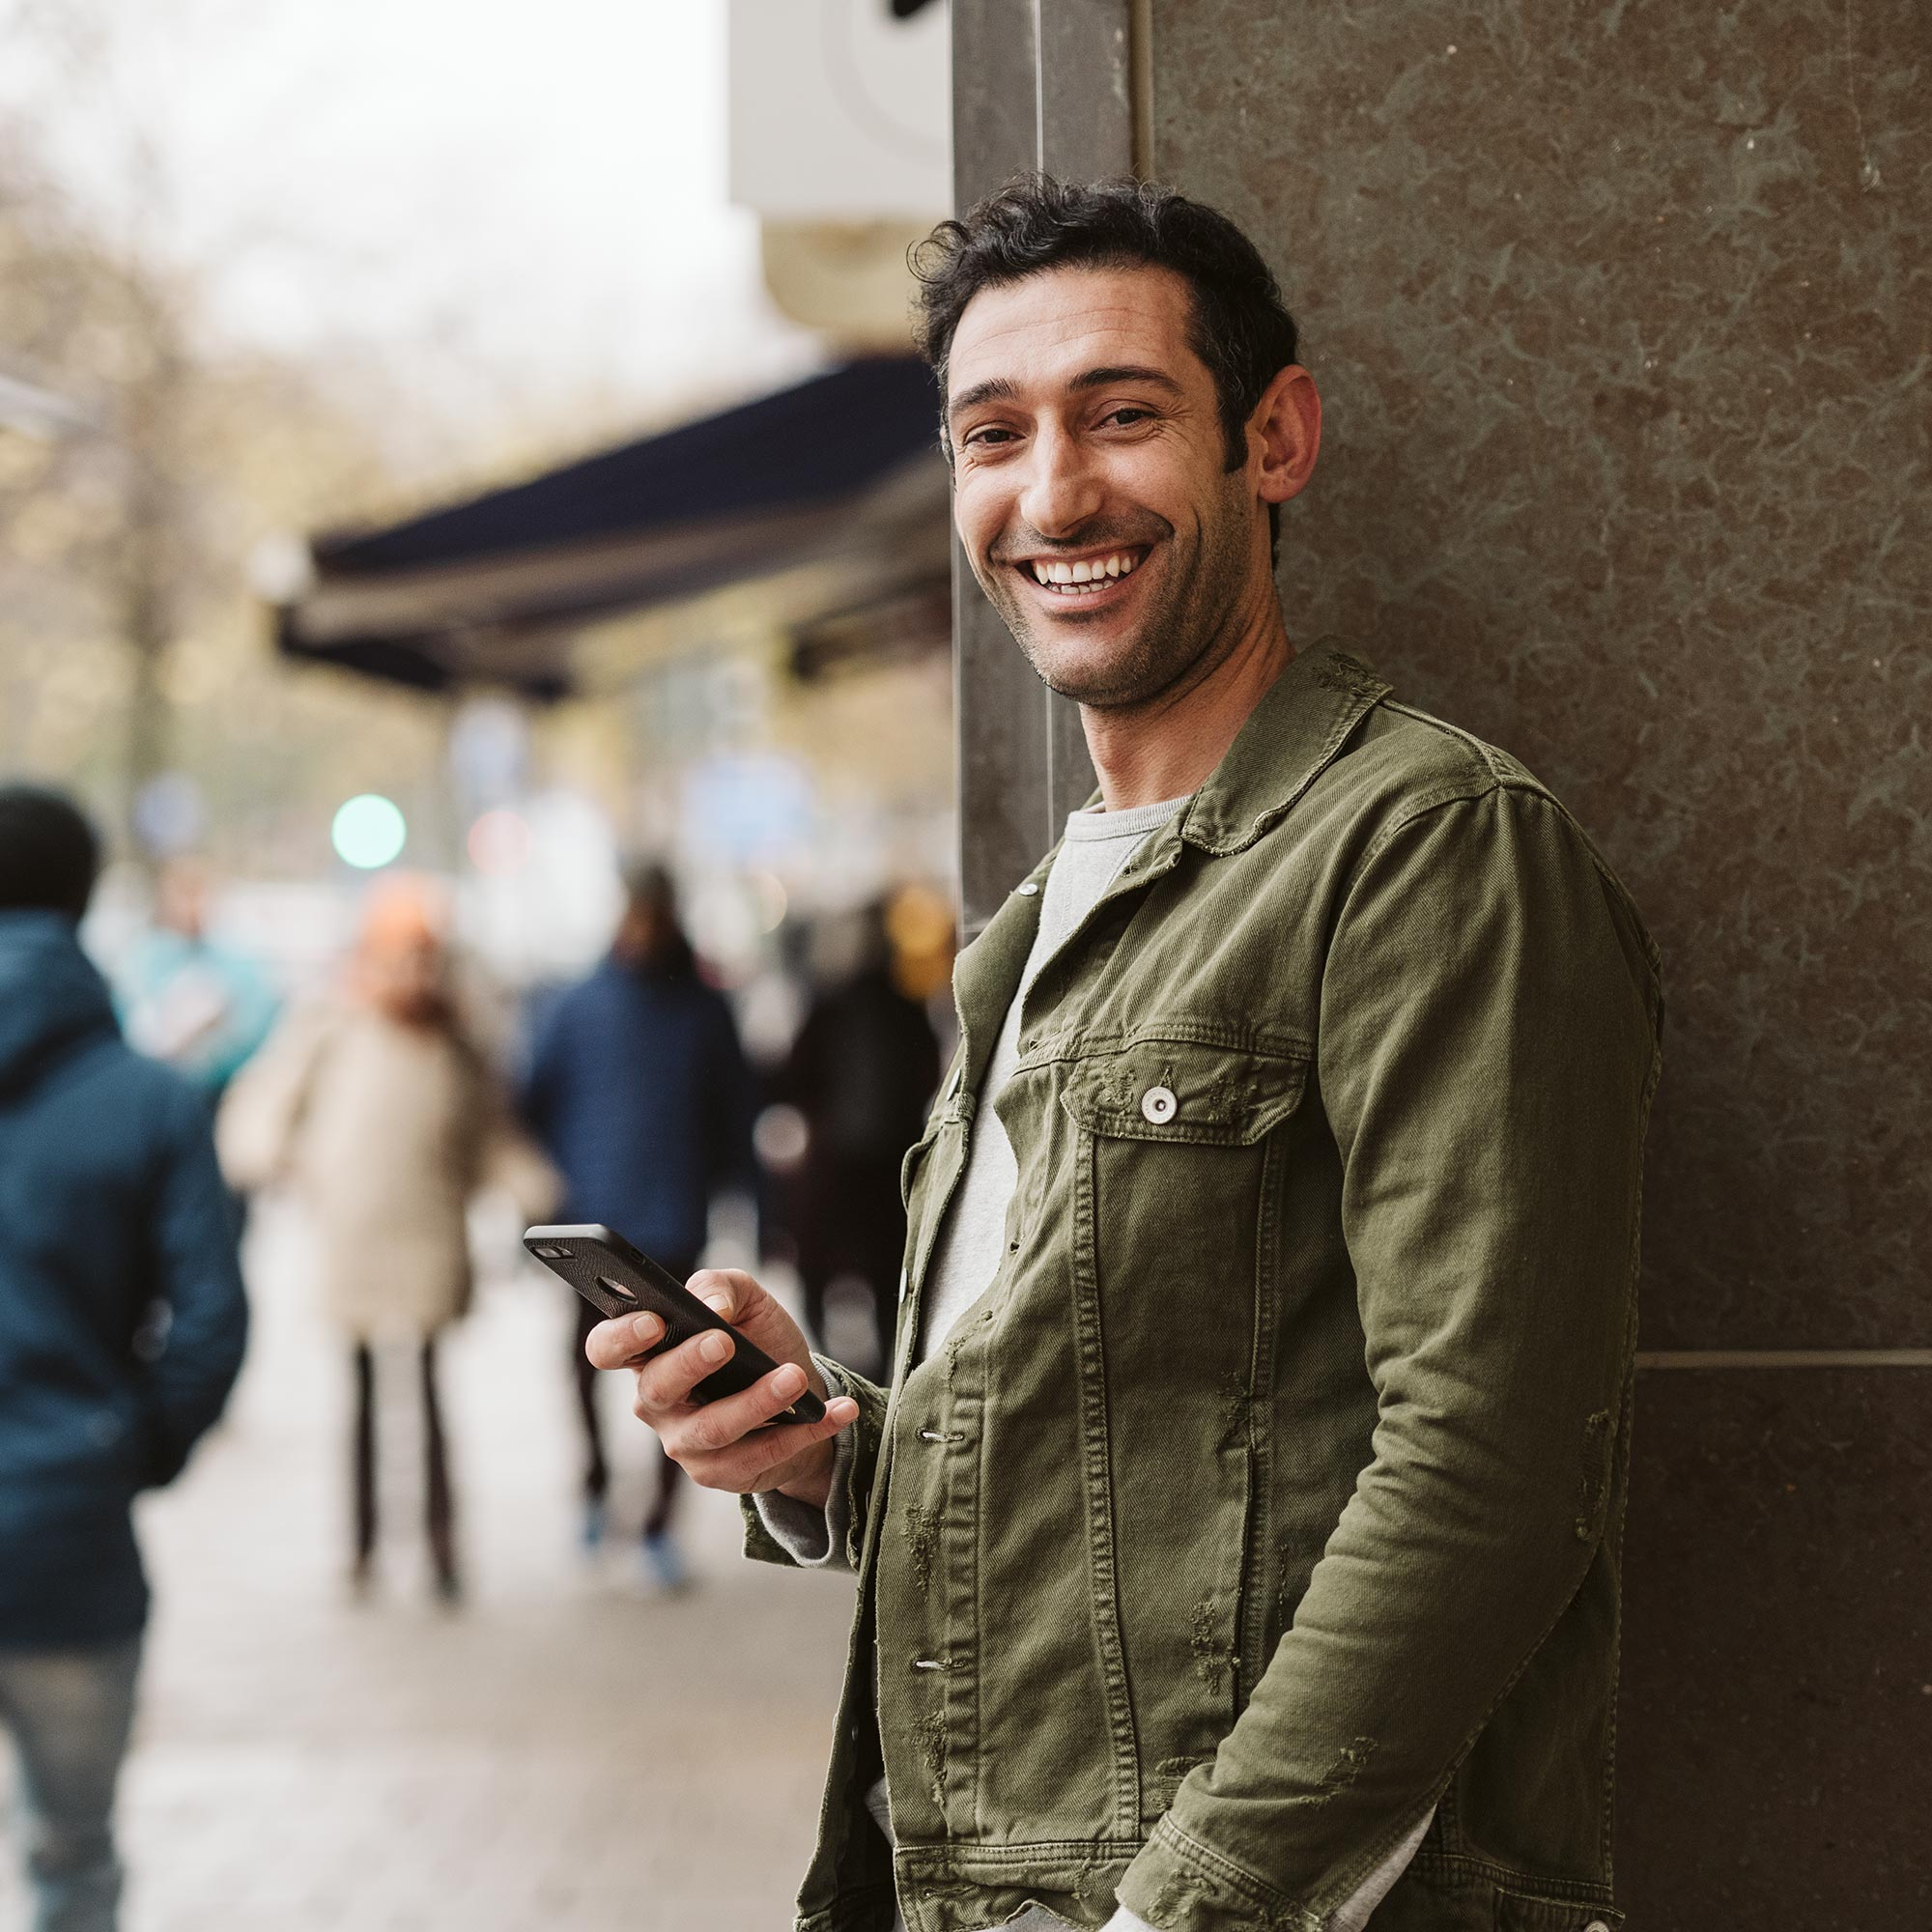 Man in the city holding mobile phone.